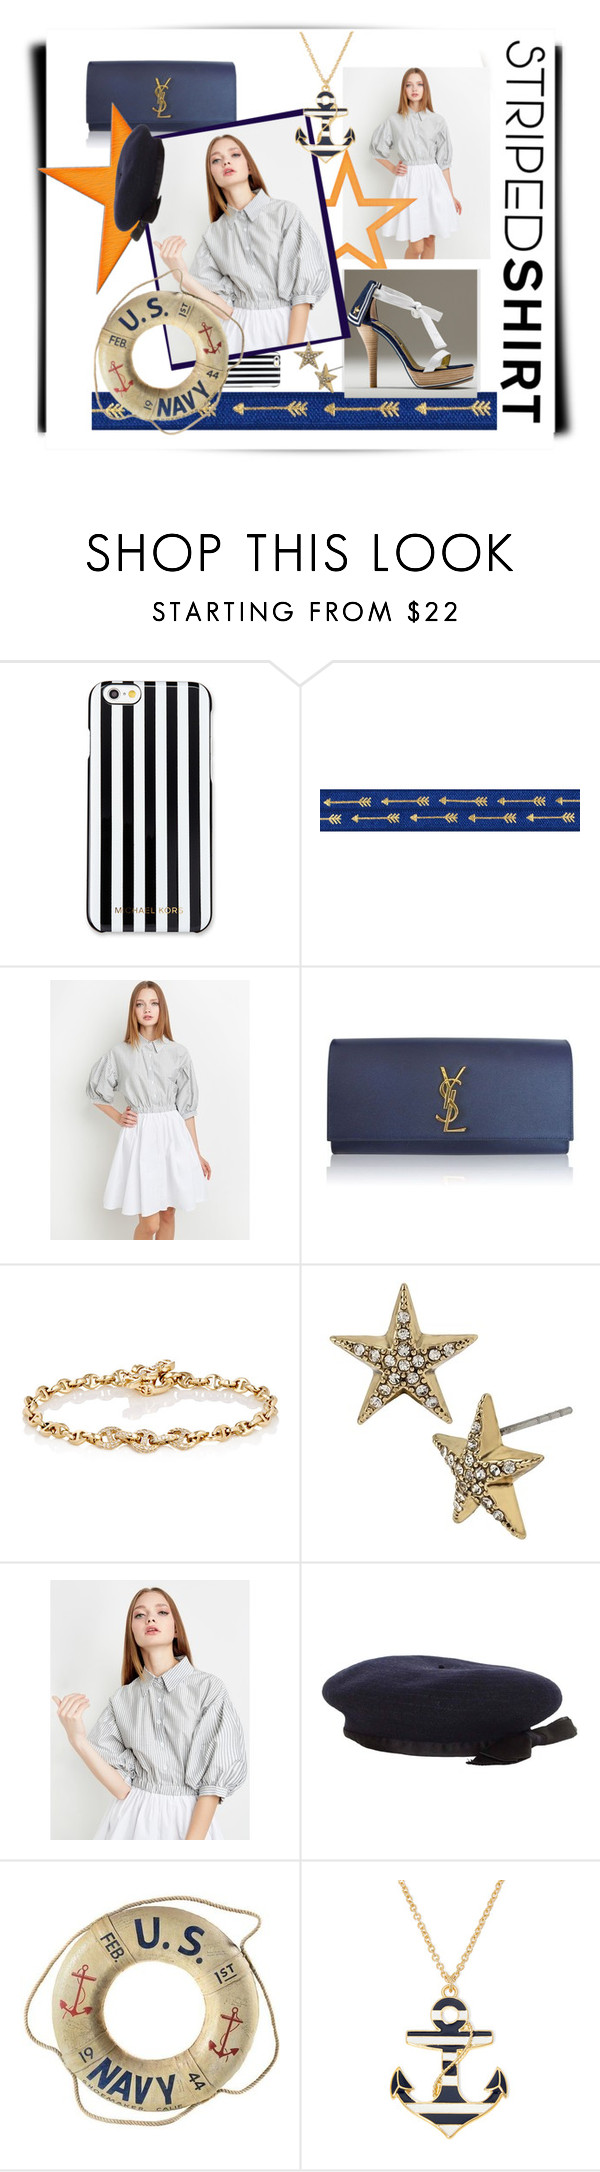 """Anchors Away!"" by spotlight918 ❤ liked on Polyvore featuring MICHAEL Michael Kors, Alberto Guardiani, Yves Saint Laurent, Hoorsenbuhs, Betsey Johnson, Chanel and Liz Claiborne"